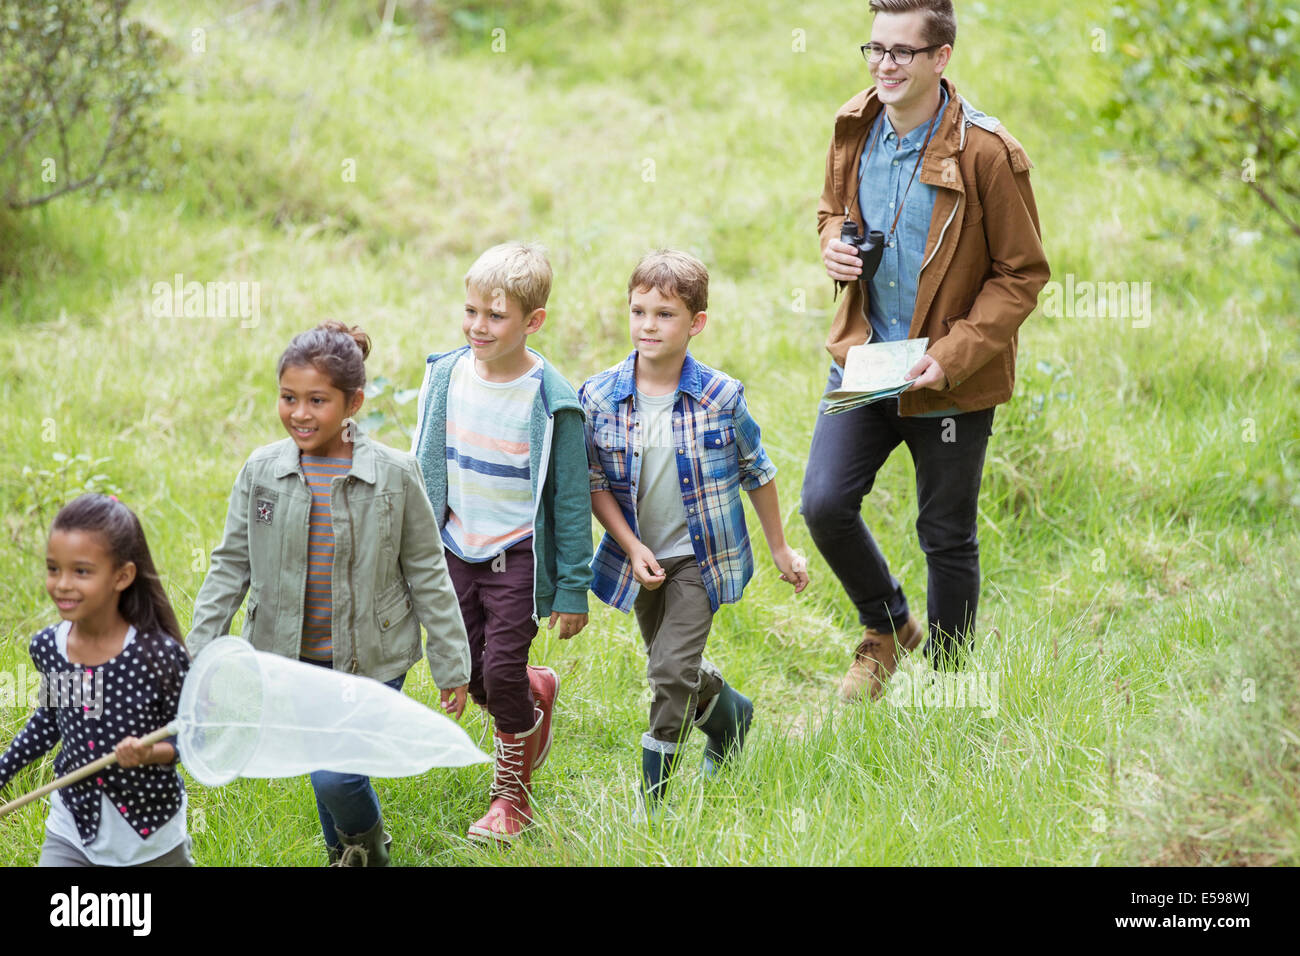 Students and teacher walking in field - Stock Image